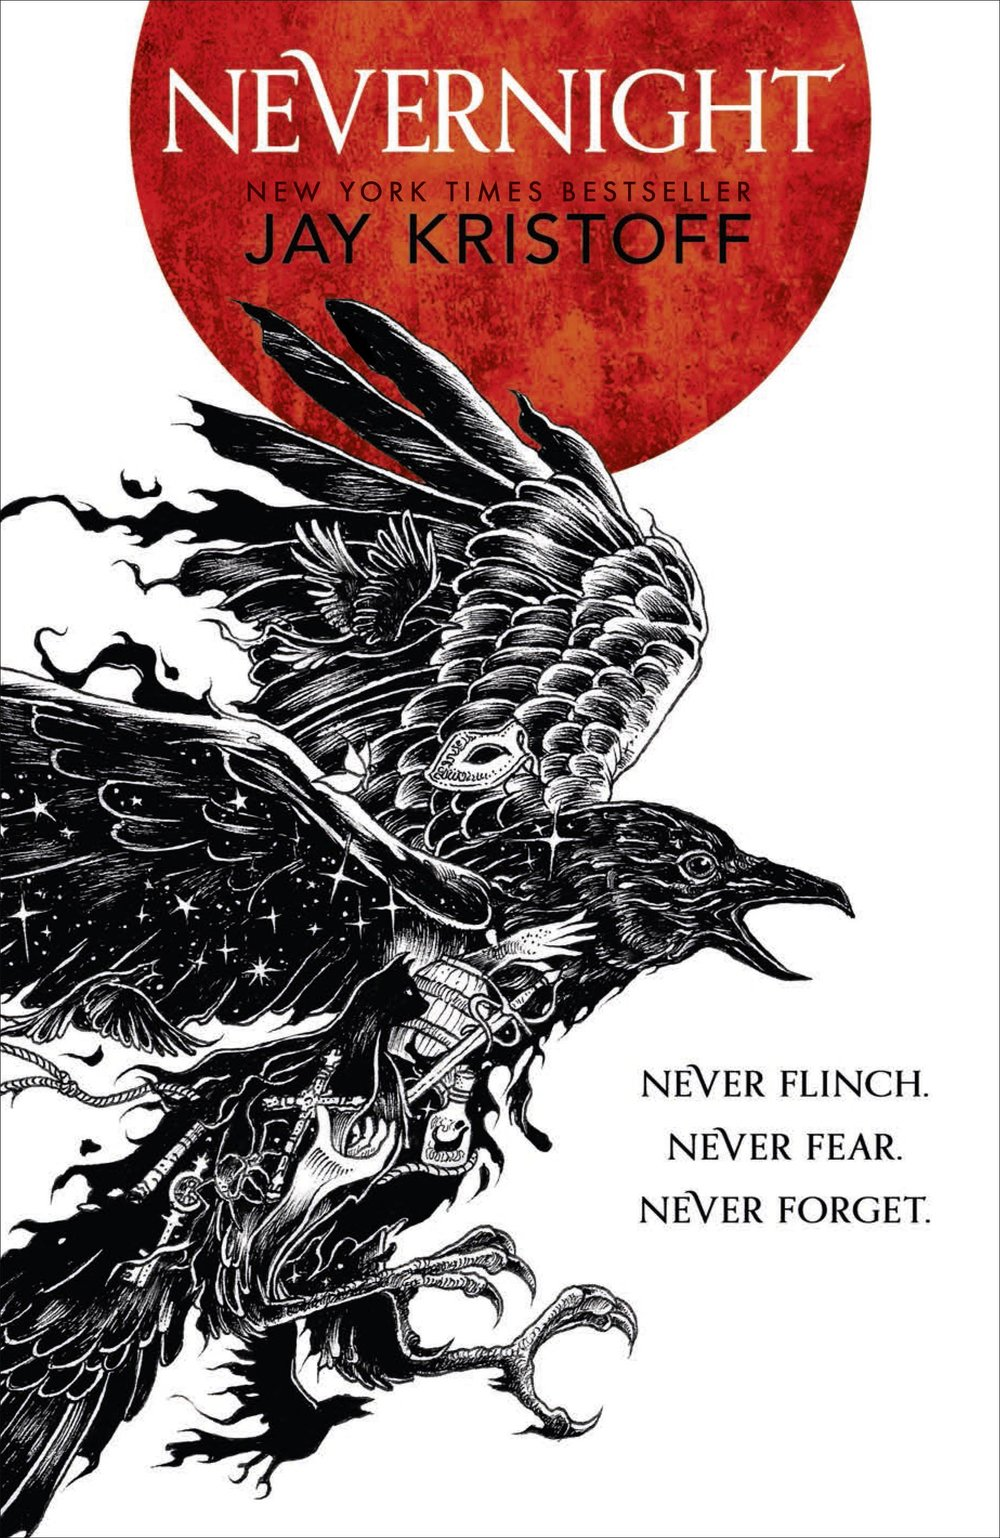 nevernight-uk.jpg